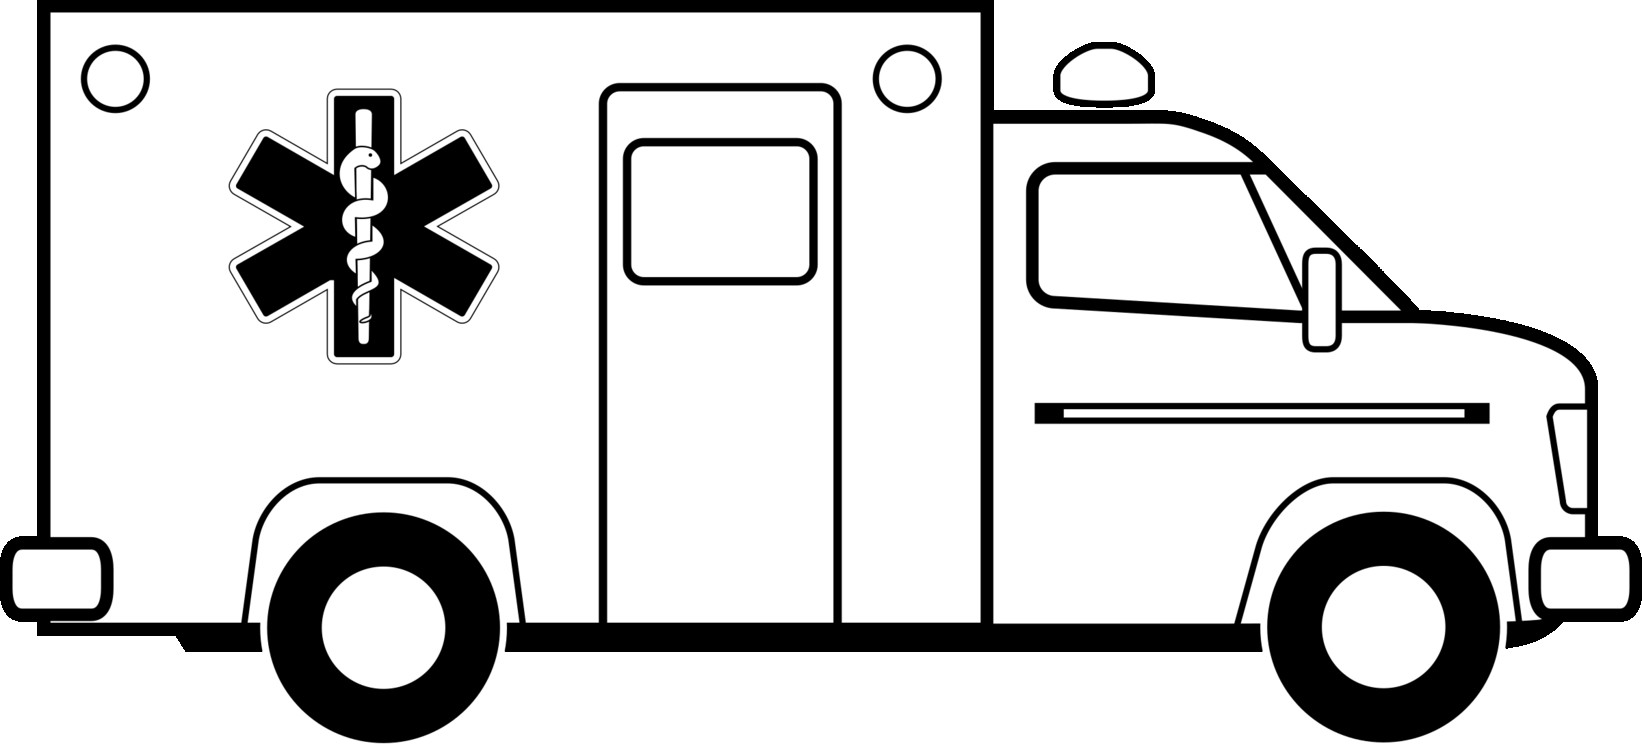 For to free images. Ambulance clipart printable